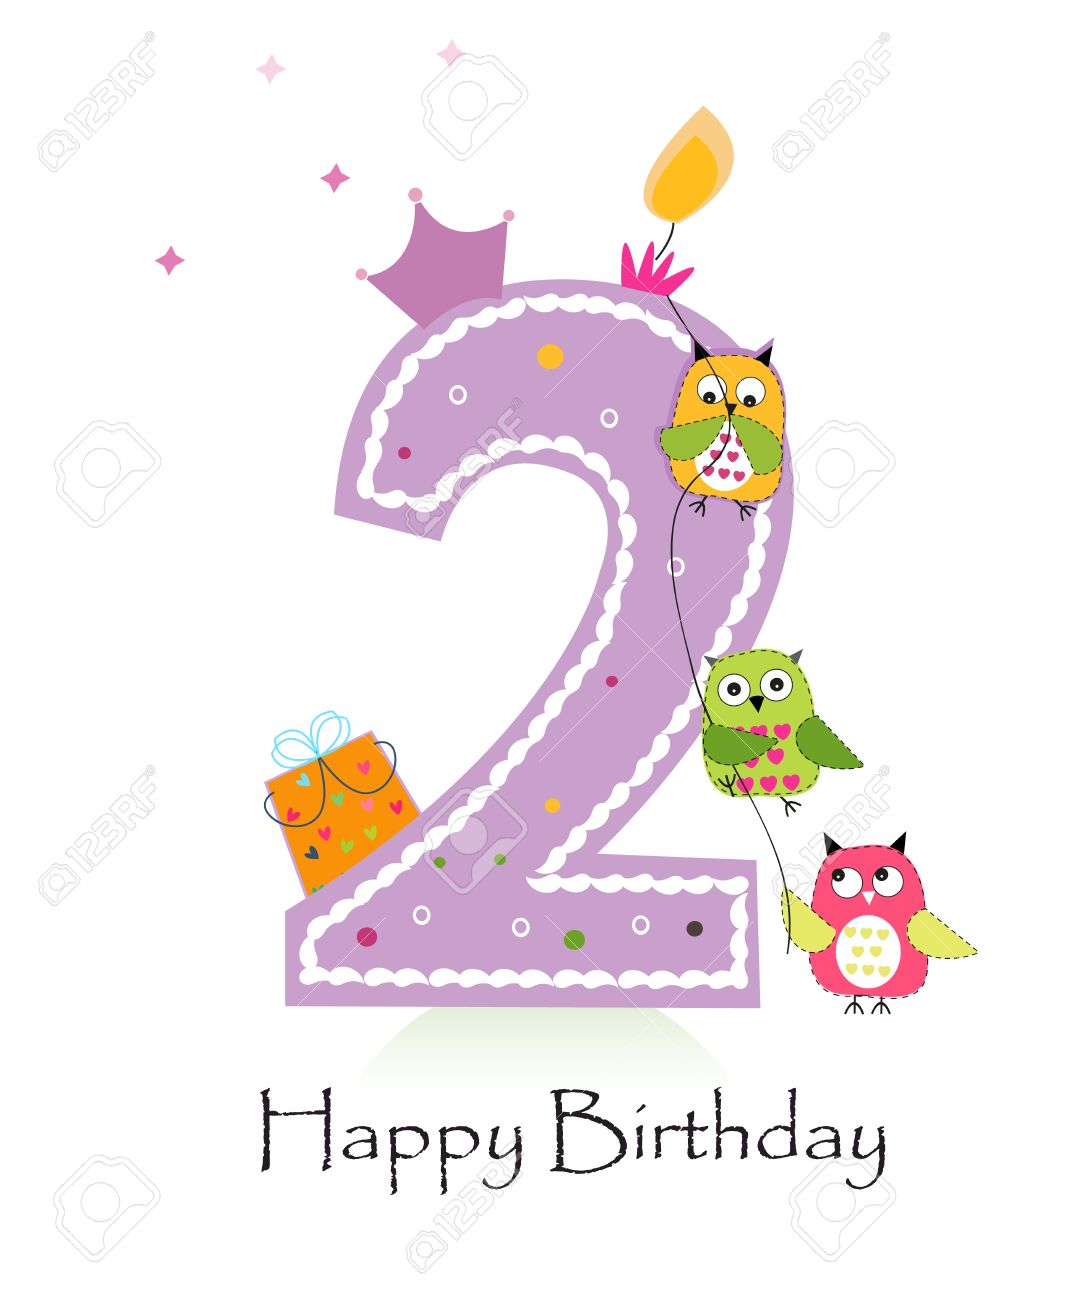 Happy Second Birthday Candle Greeting Card With Owls Baby Girl Stock Vector